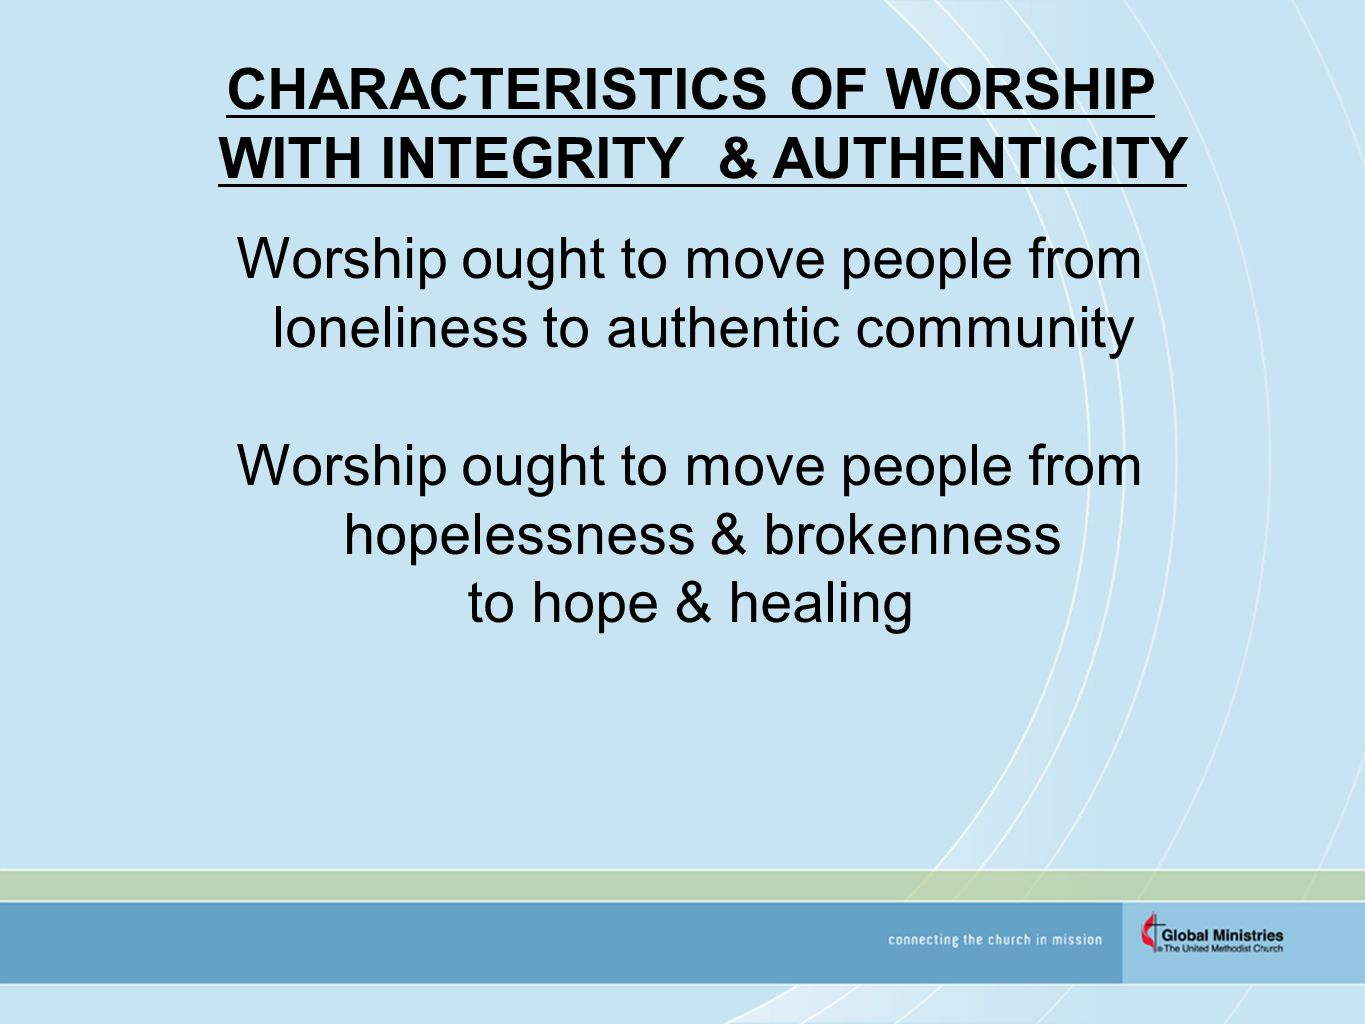 CHARACTERISTICS OF WORSHIP WITH INTEGRITY & AUTHENTICITY Worship ought to move people from loneliness to authentic community Worship ought to move people from hopelessness & brokenness to hope & healing